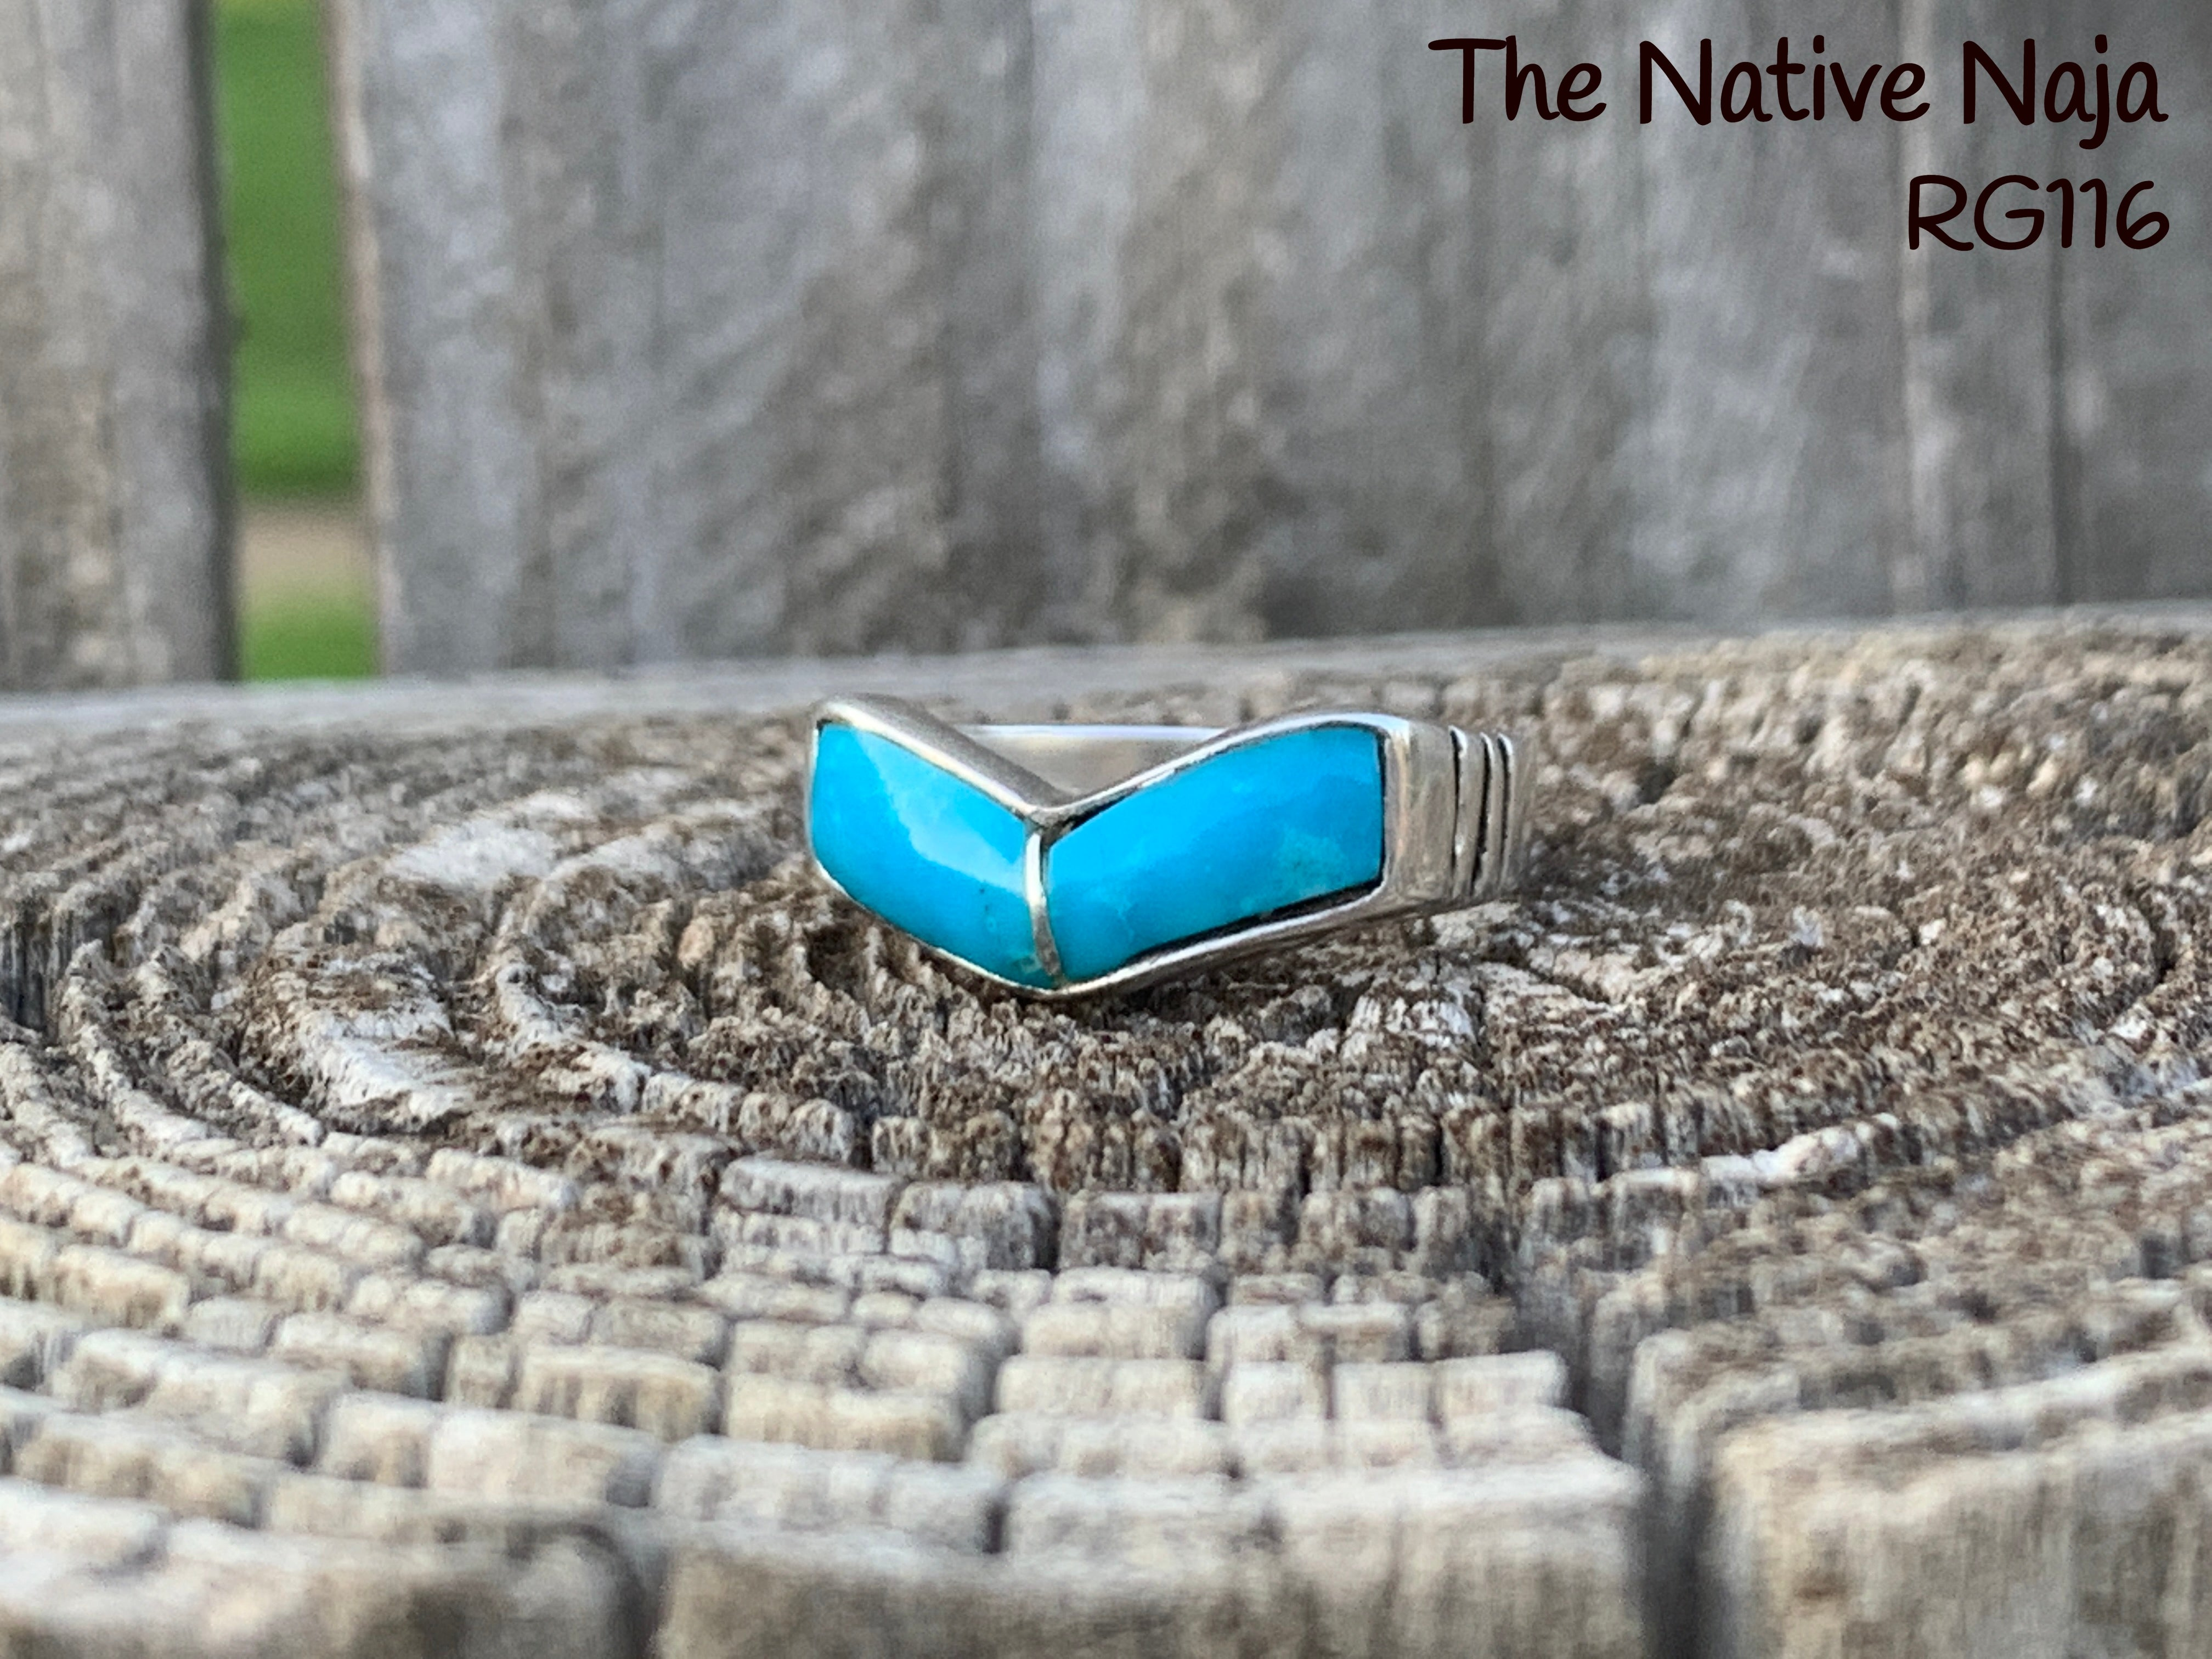 Genuine Zuni Turquoise Inlay & Sterling Silver Stackable Band Ring Size 6 3/4 RG116